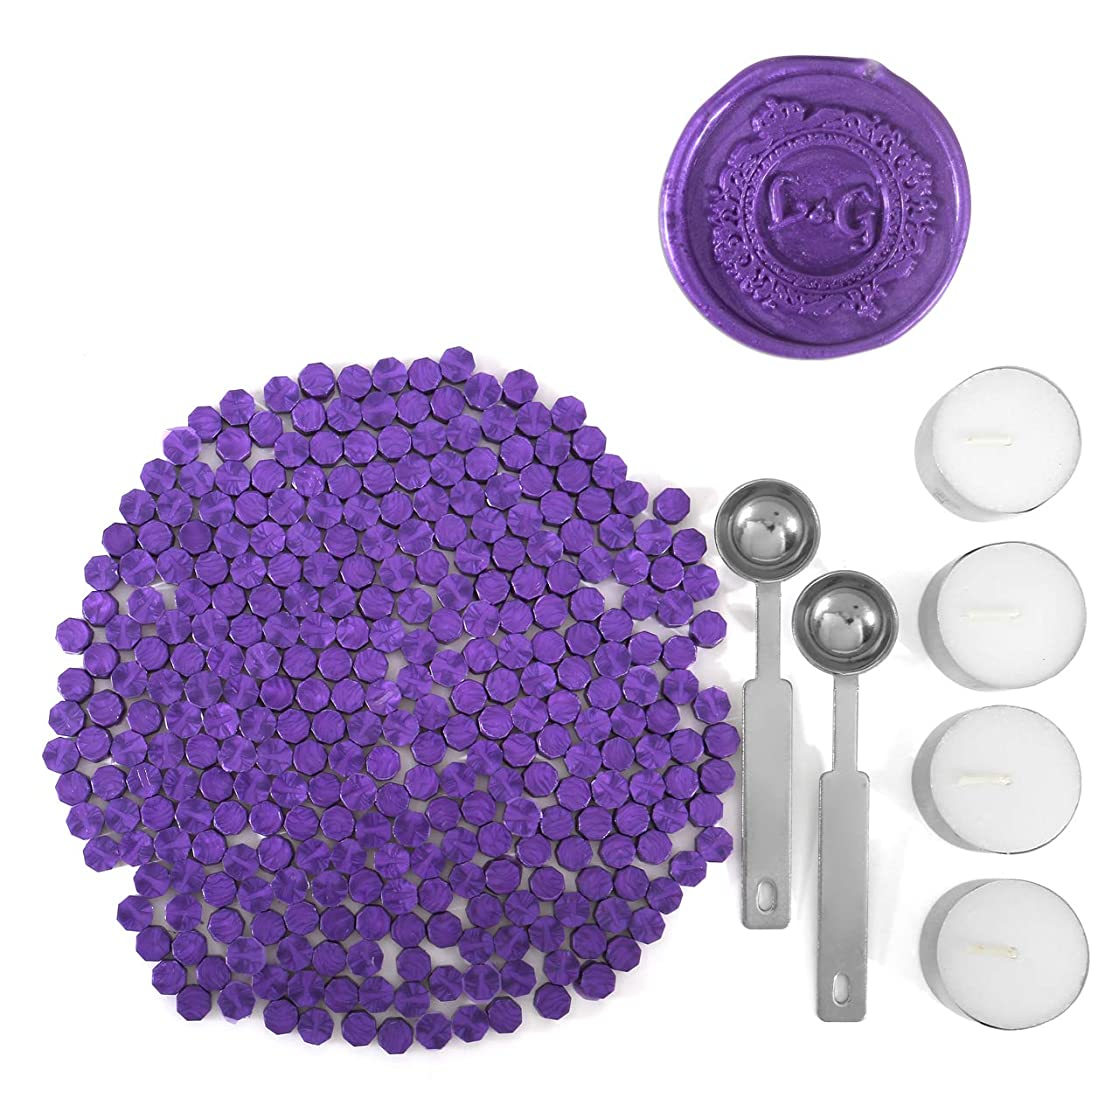 Purple Wax Seal Beads, Yoption 300 Pieces Octagon Sealing Wax Sticks Beads with 4 Candles and 2 Melting Spoons for Seal Stamp (Purple)